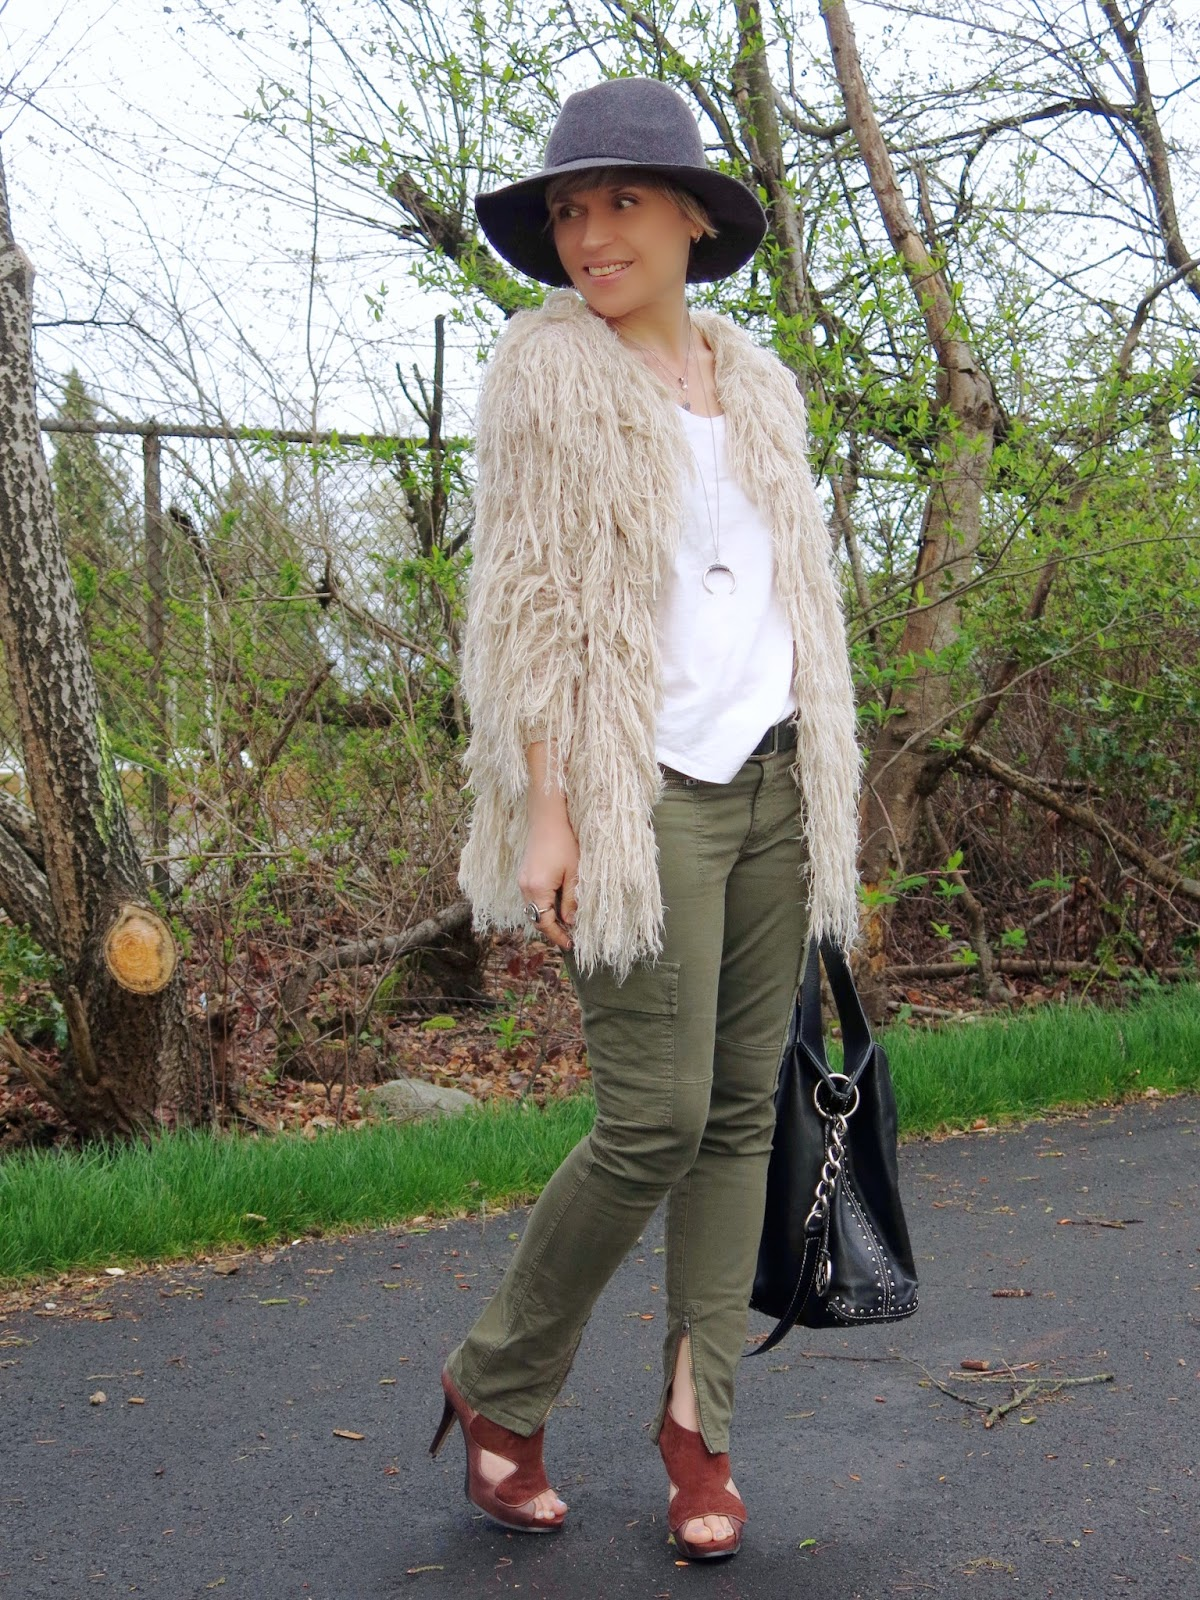 styling skinny cargo pants with a fringy cardigan and floppy hat